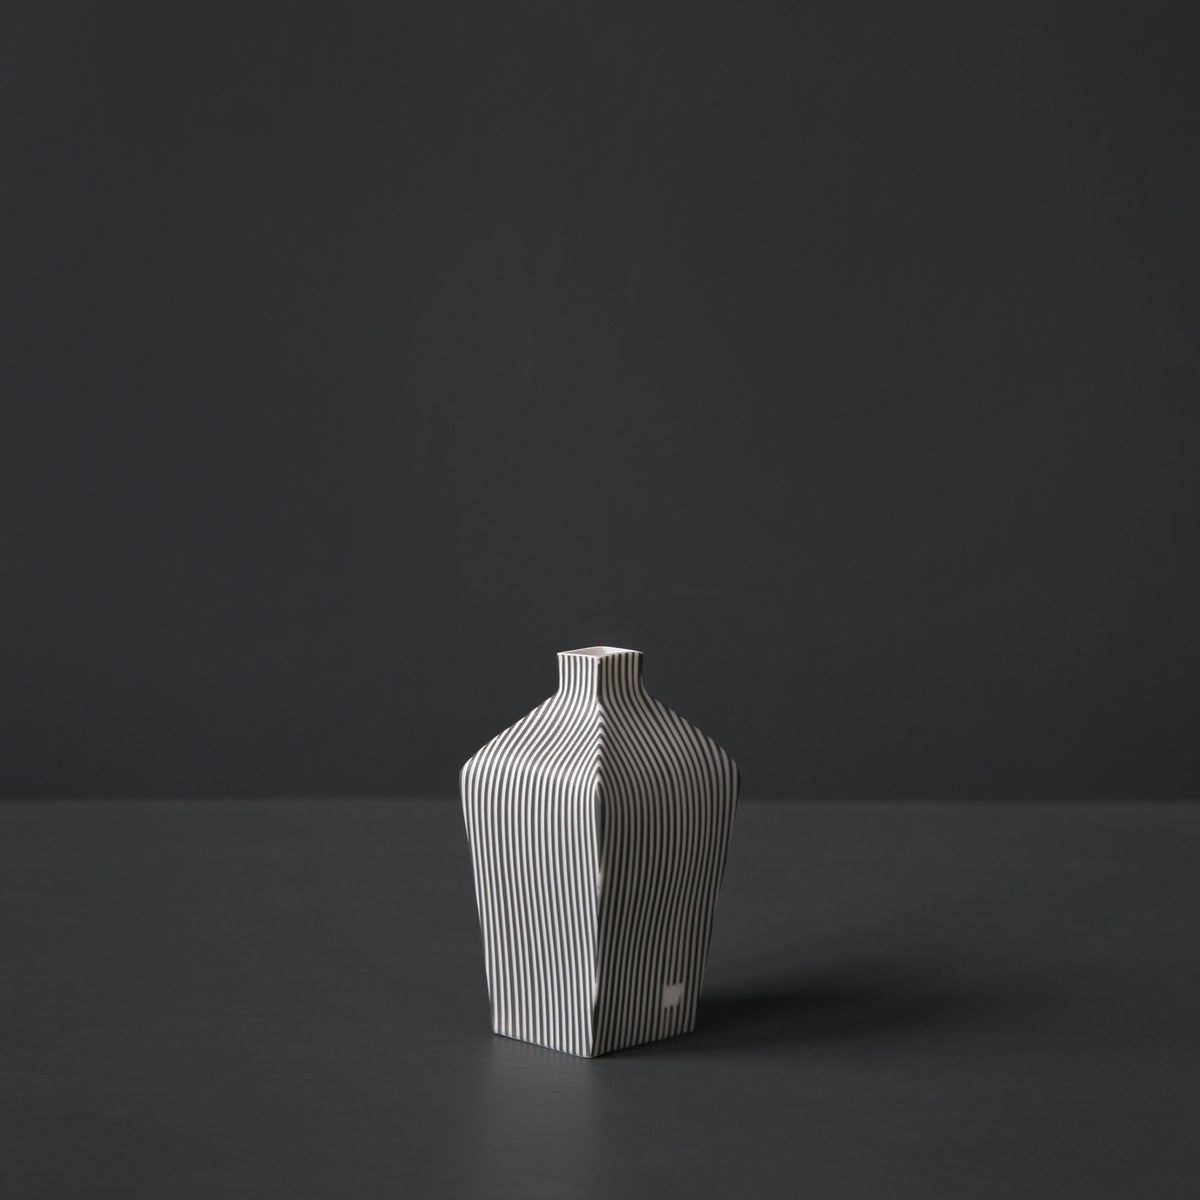 Image of Tapered Stripe Vessel #2 by Justine Allison.